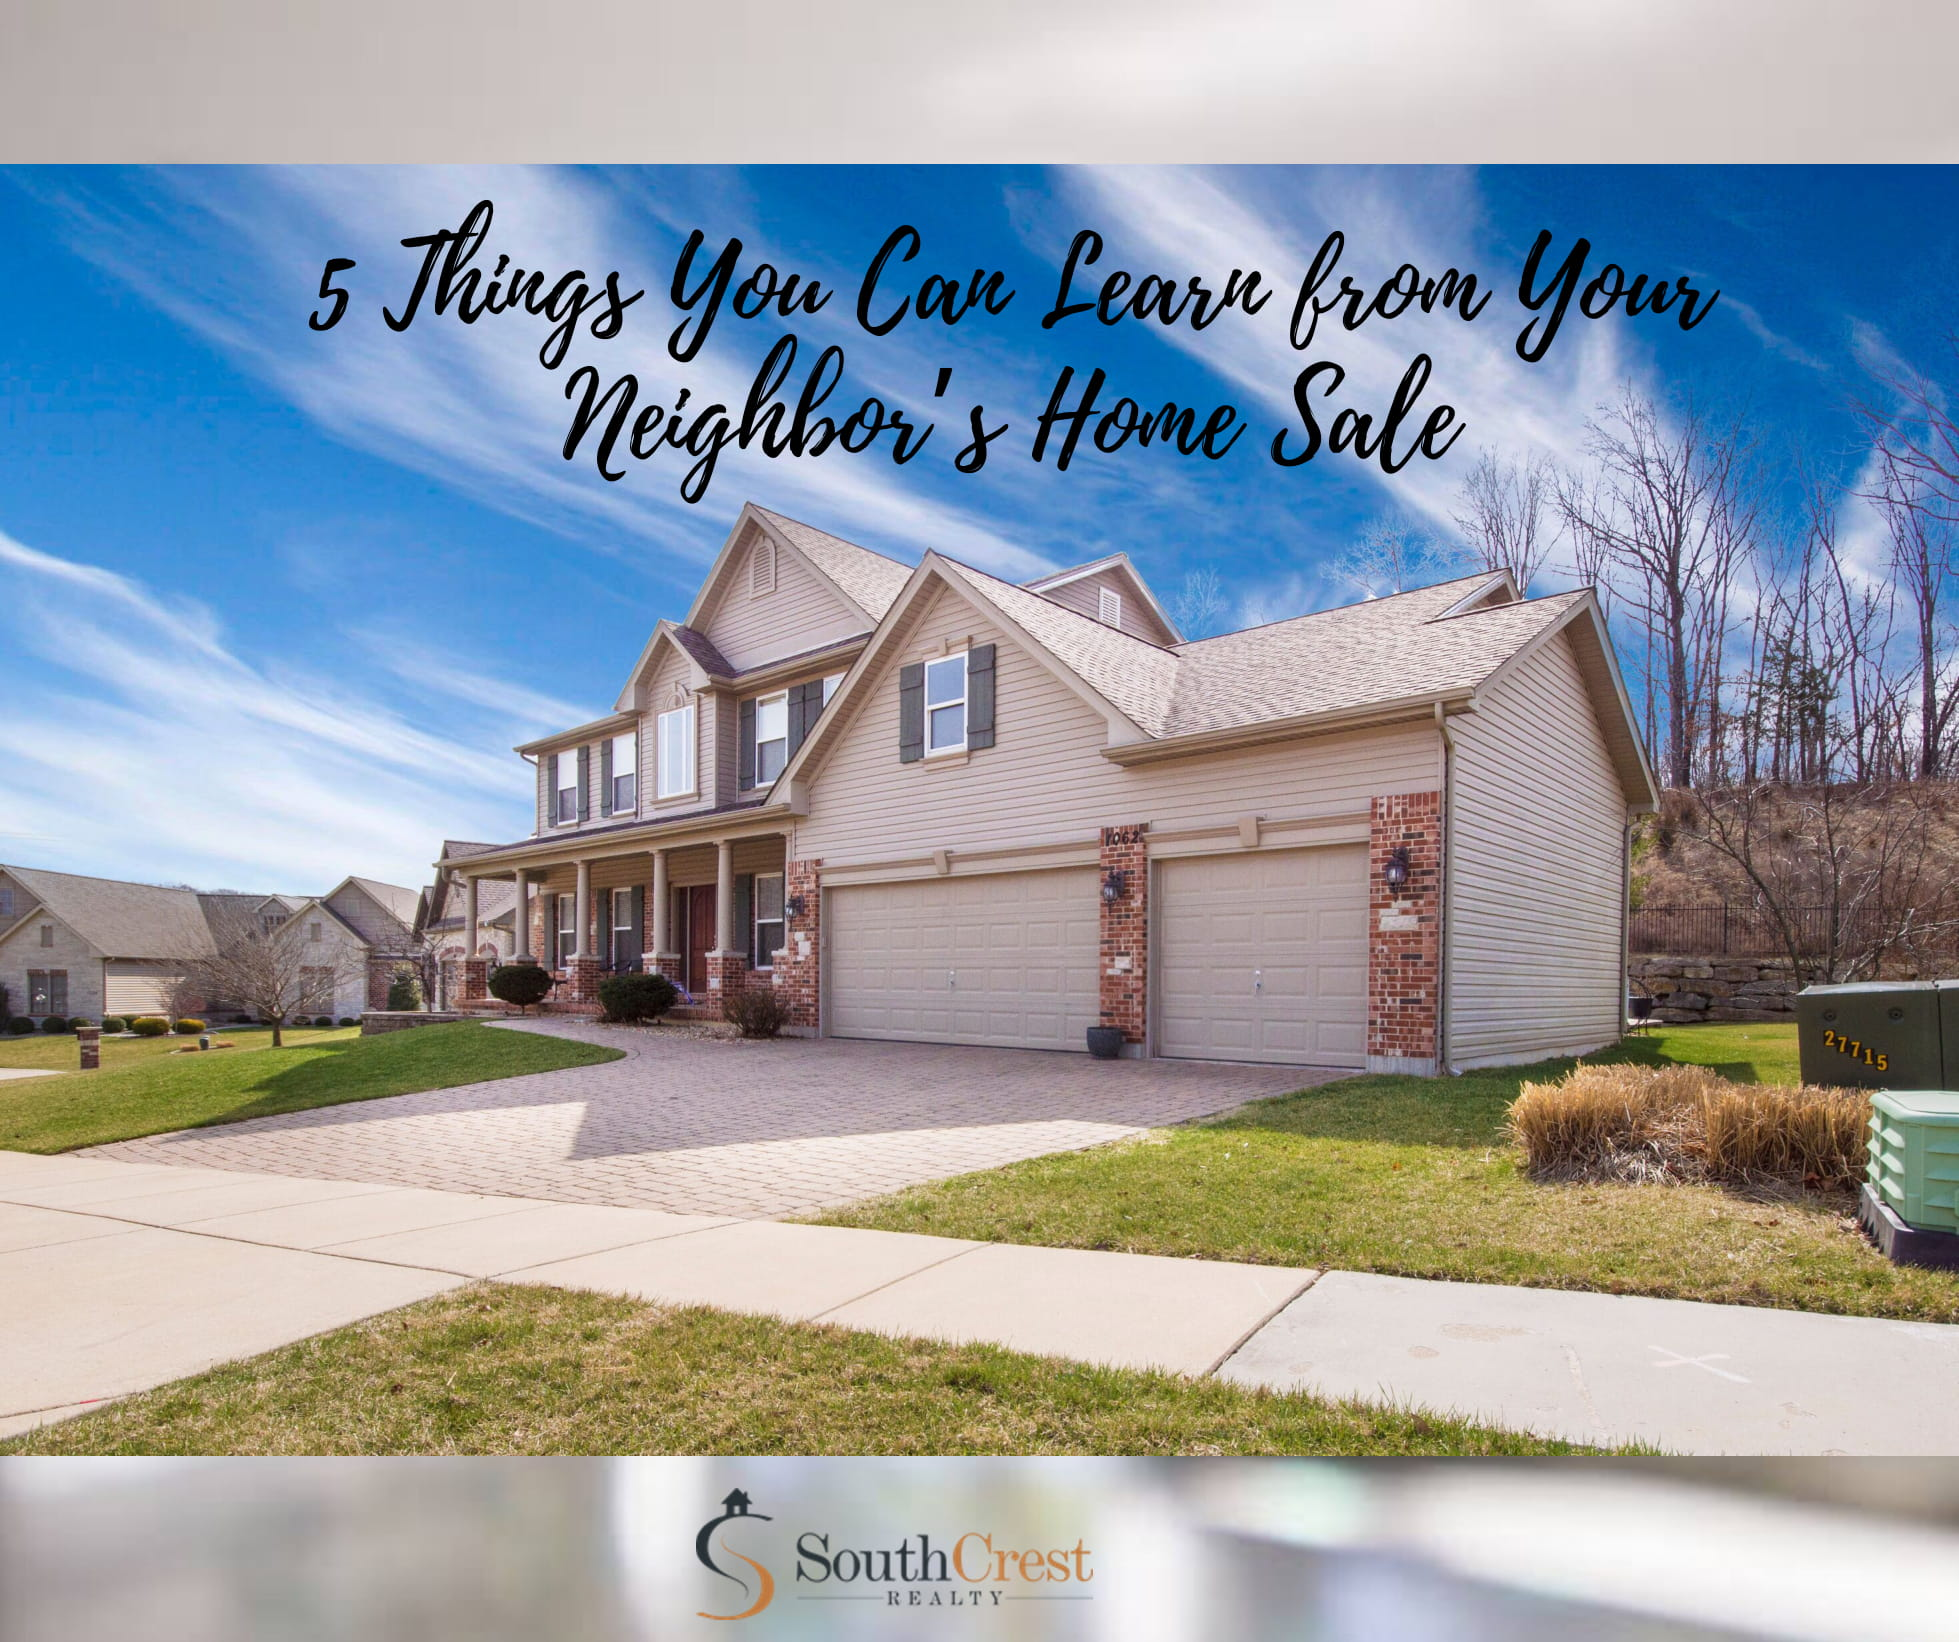 5 Things You Can Learn from Your Neighbor's Home Sale